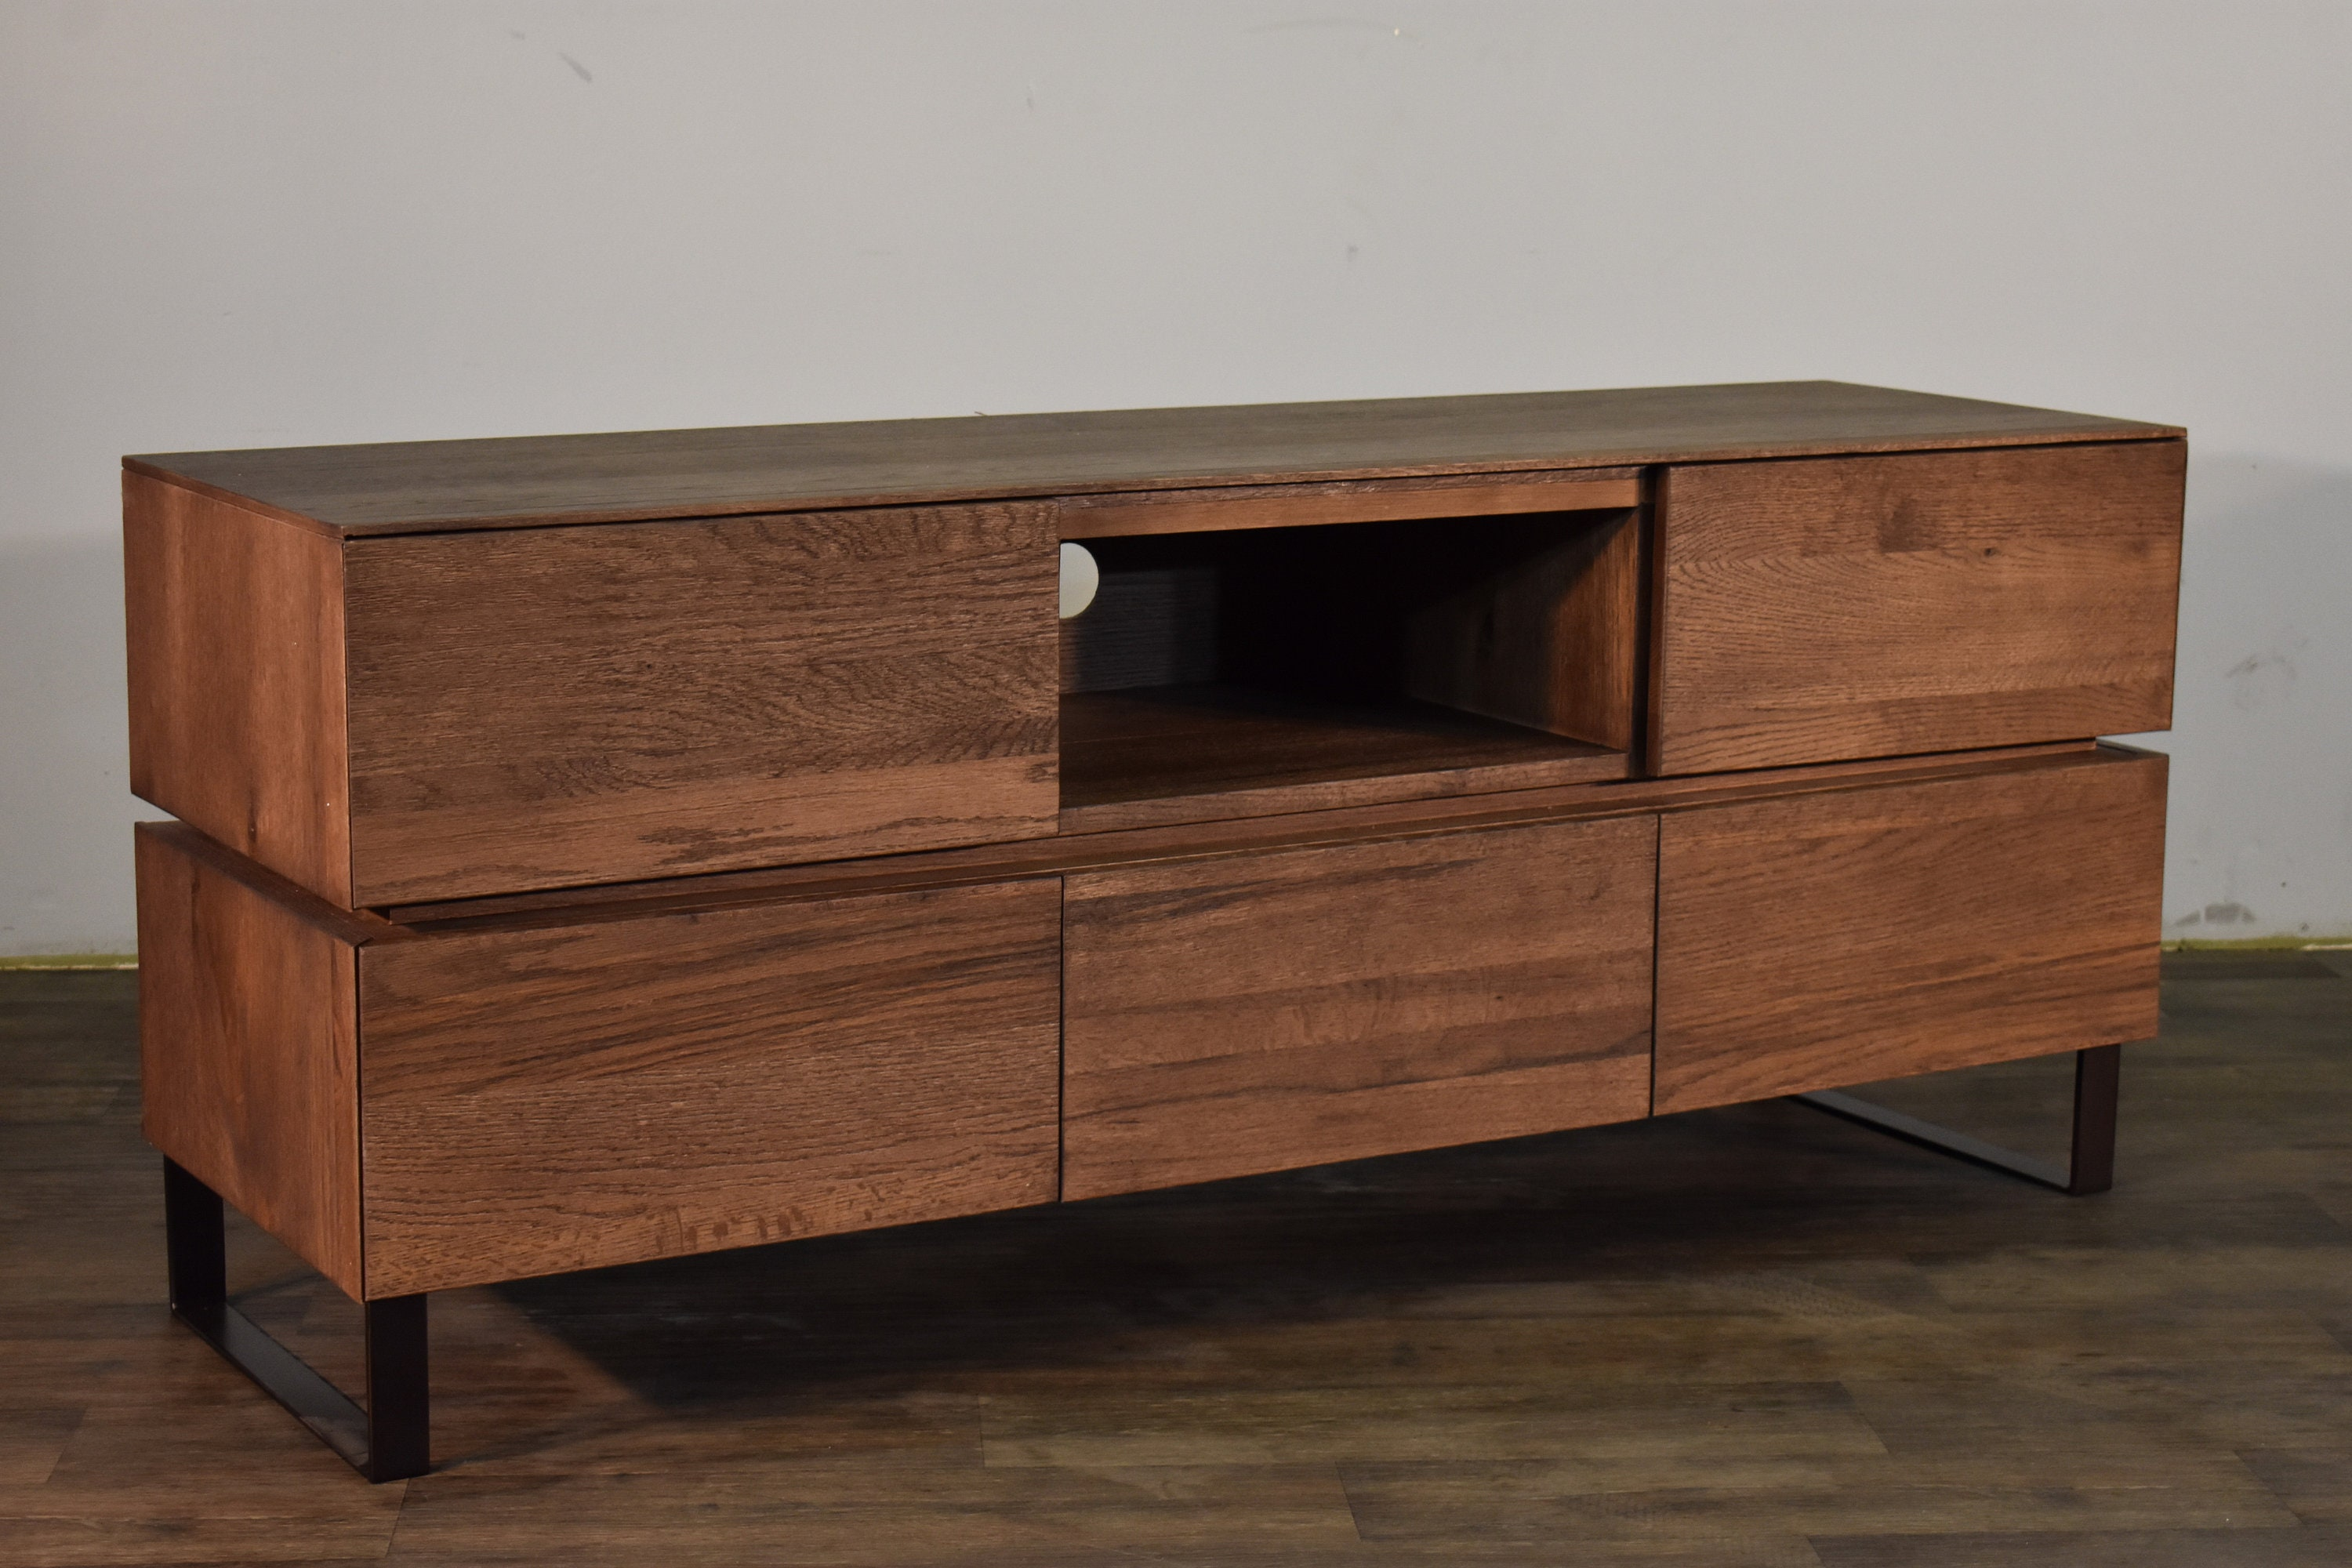 Rustic Mid Century Style Oak Tv Stand Media Console With Etsy